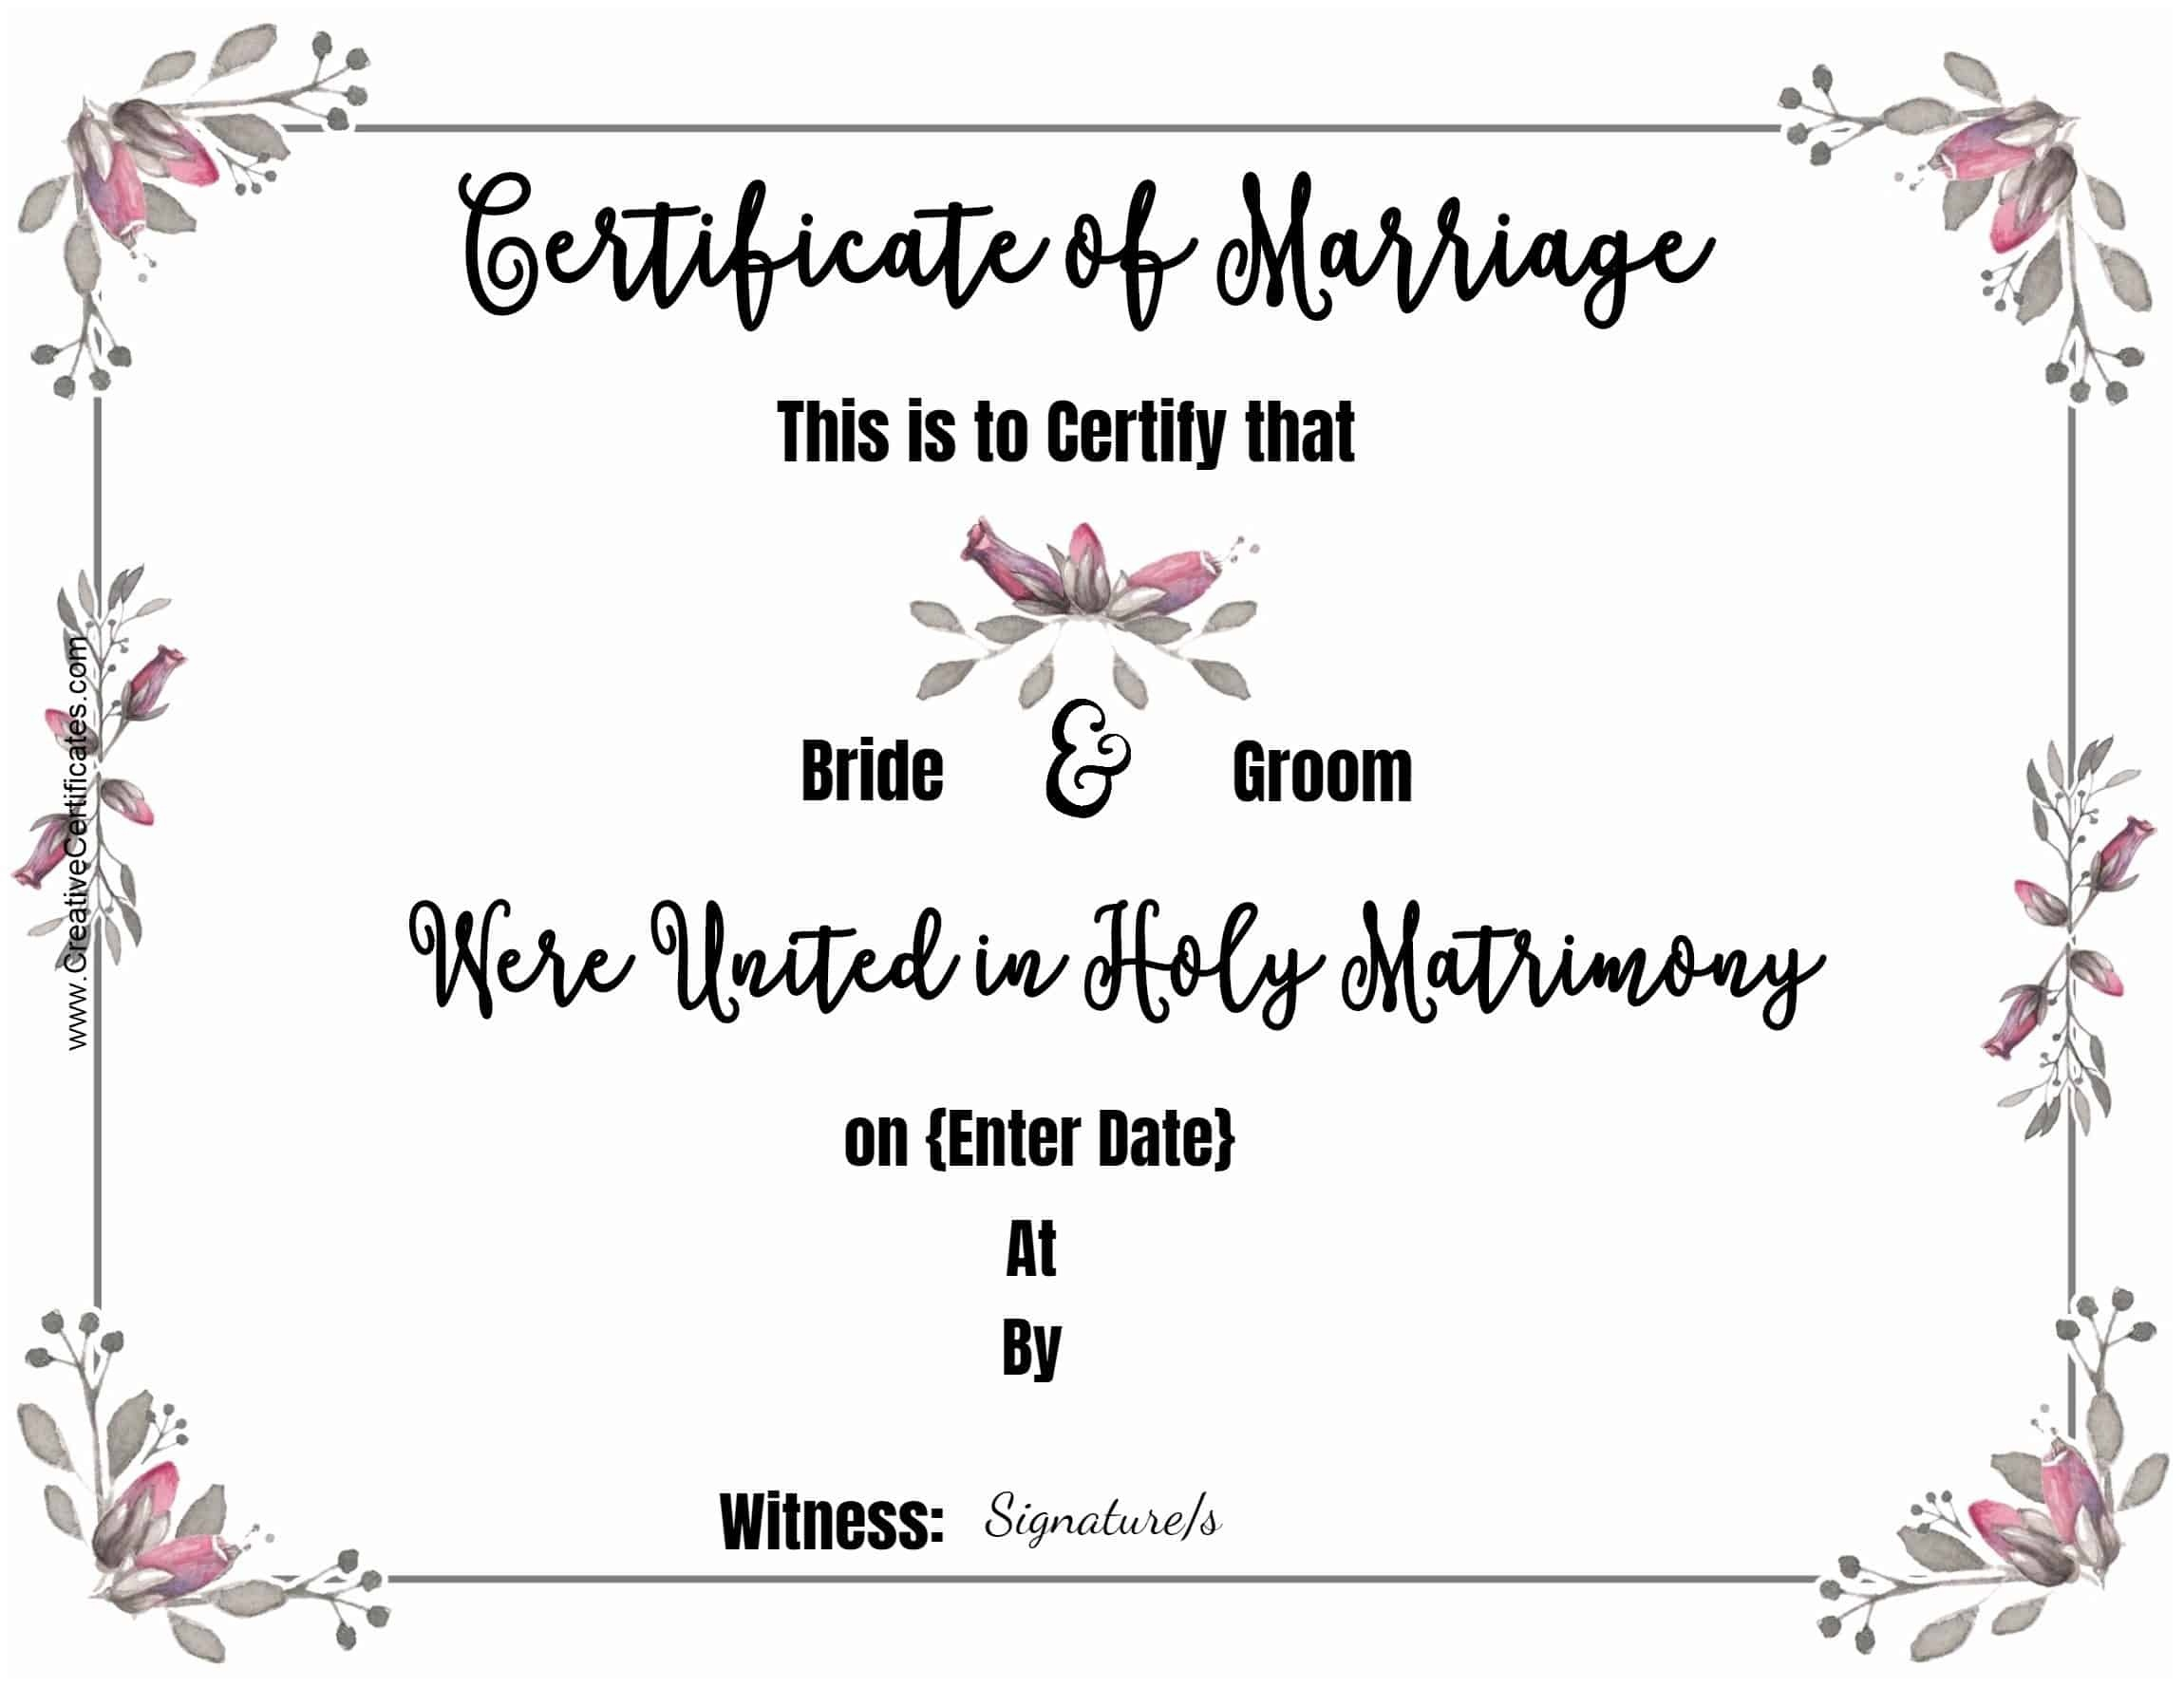 Free Marriage Certificate Template | Customize Online Then Print - Fake Marriage Certificate Printable Free